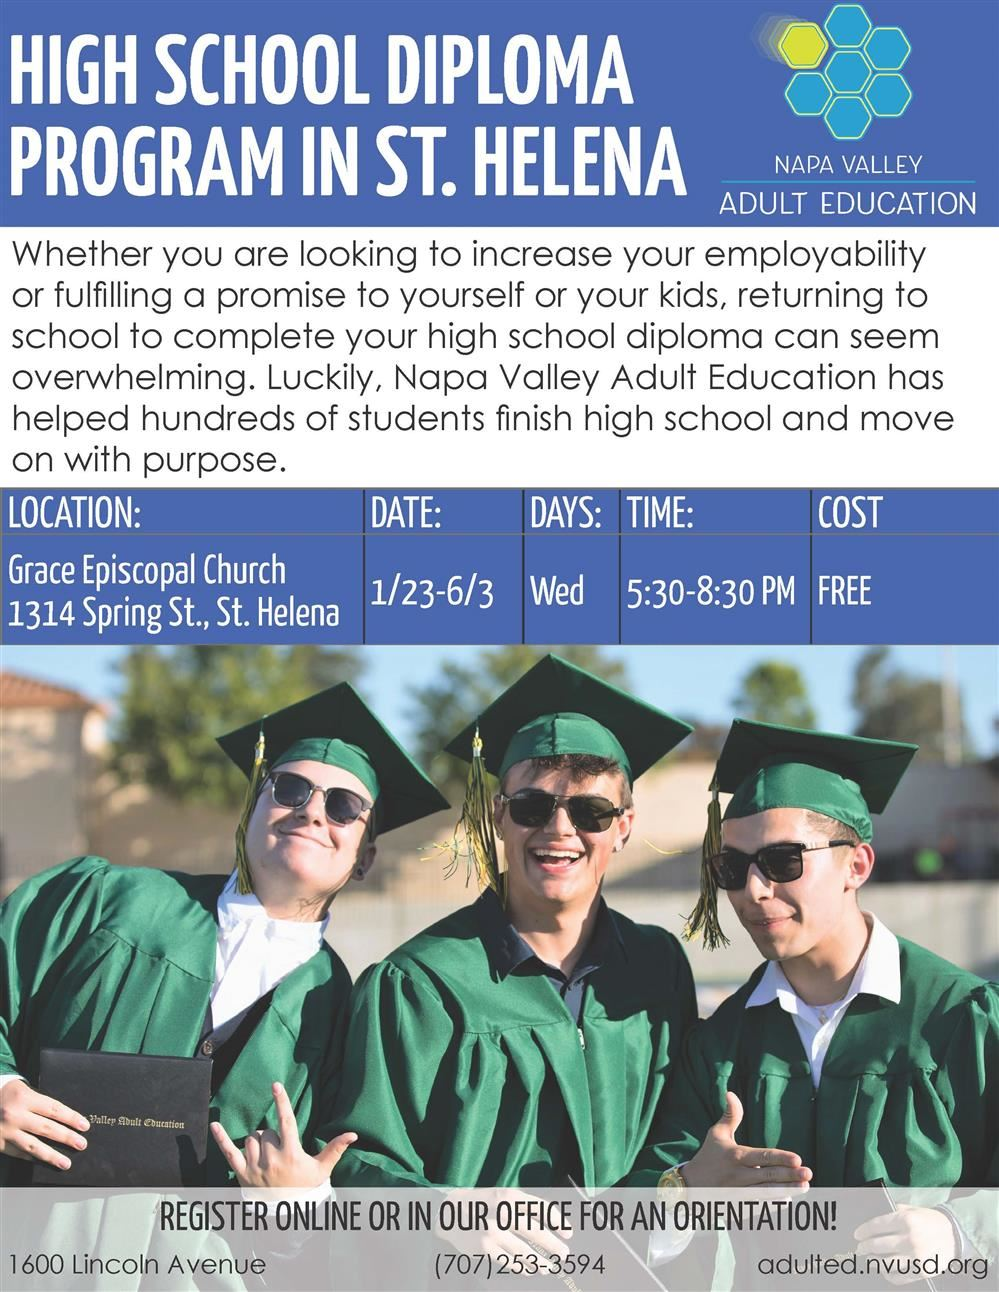 High School Diploma /Equivalency Classes at Grace Episcopal Church in St. Helena / Clases en espanol tambien disponible